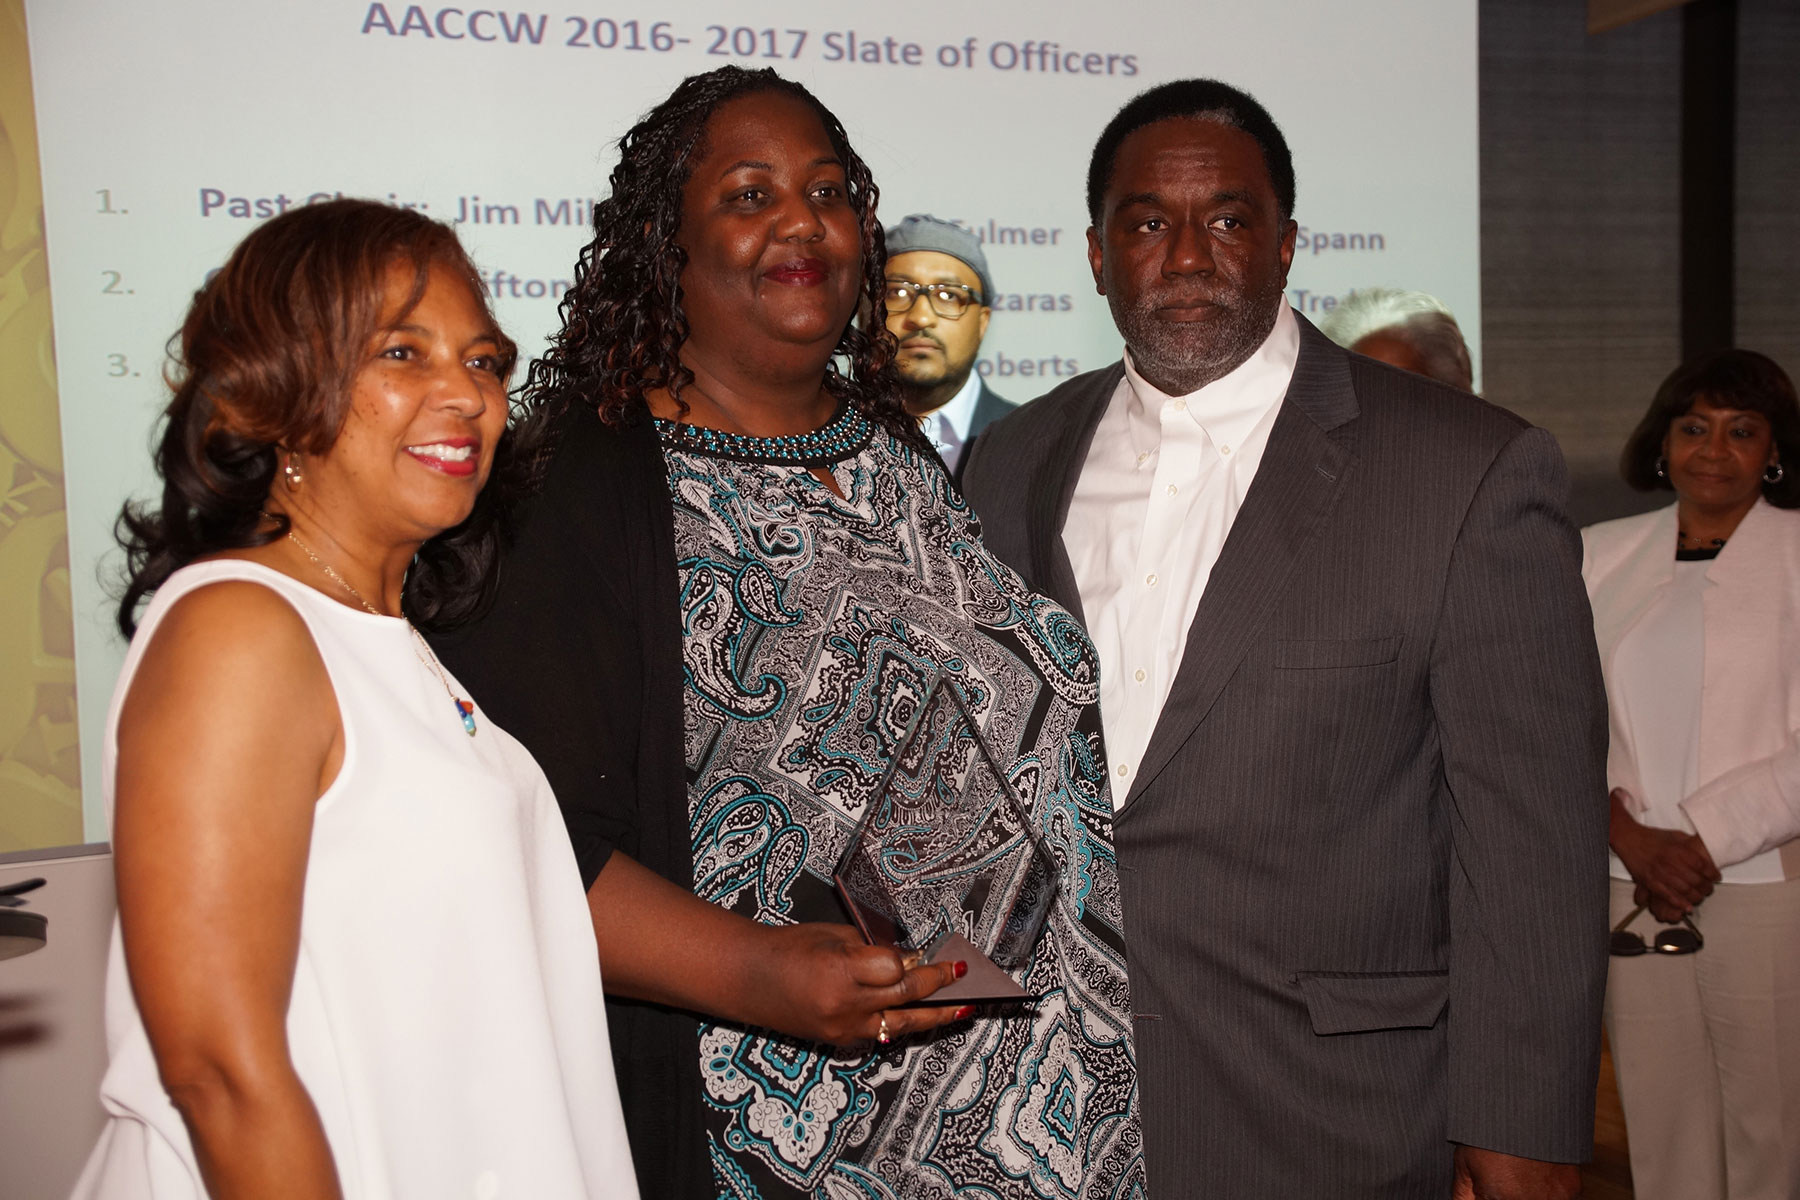 062816_AACCW-Annual_255